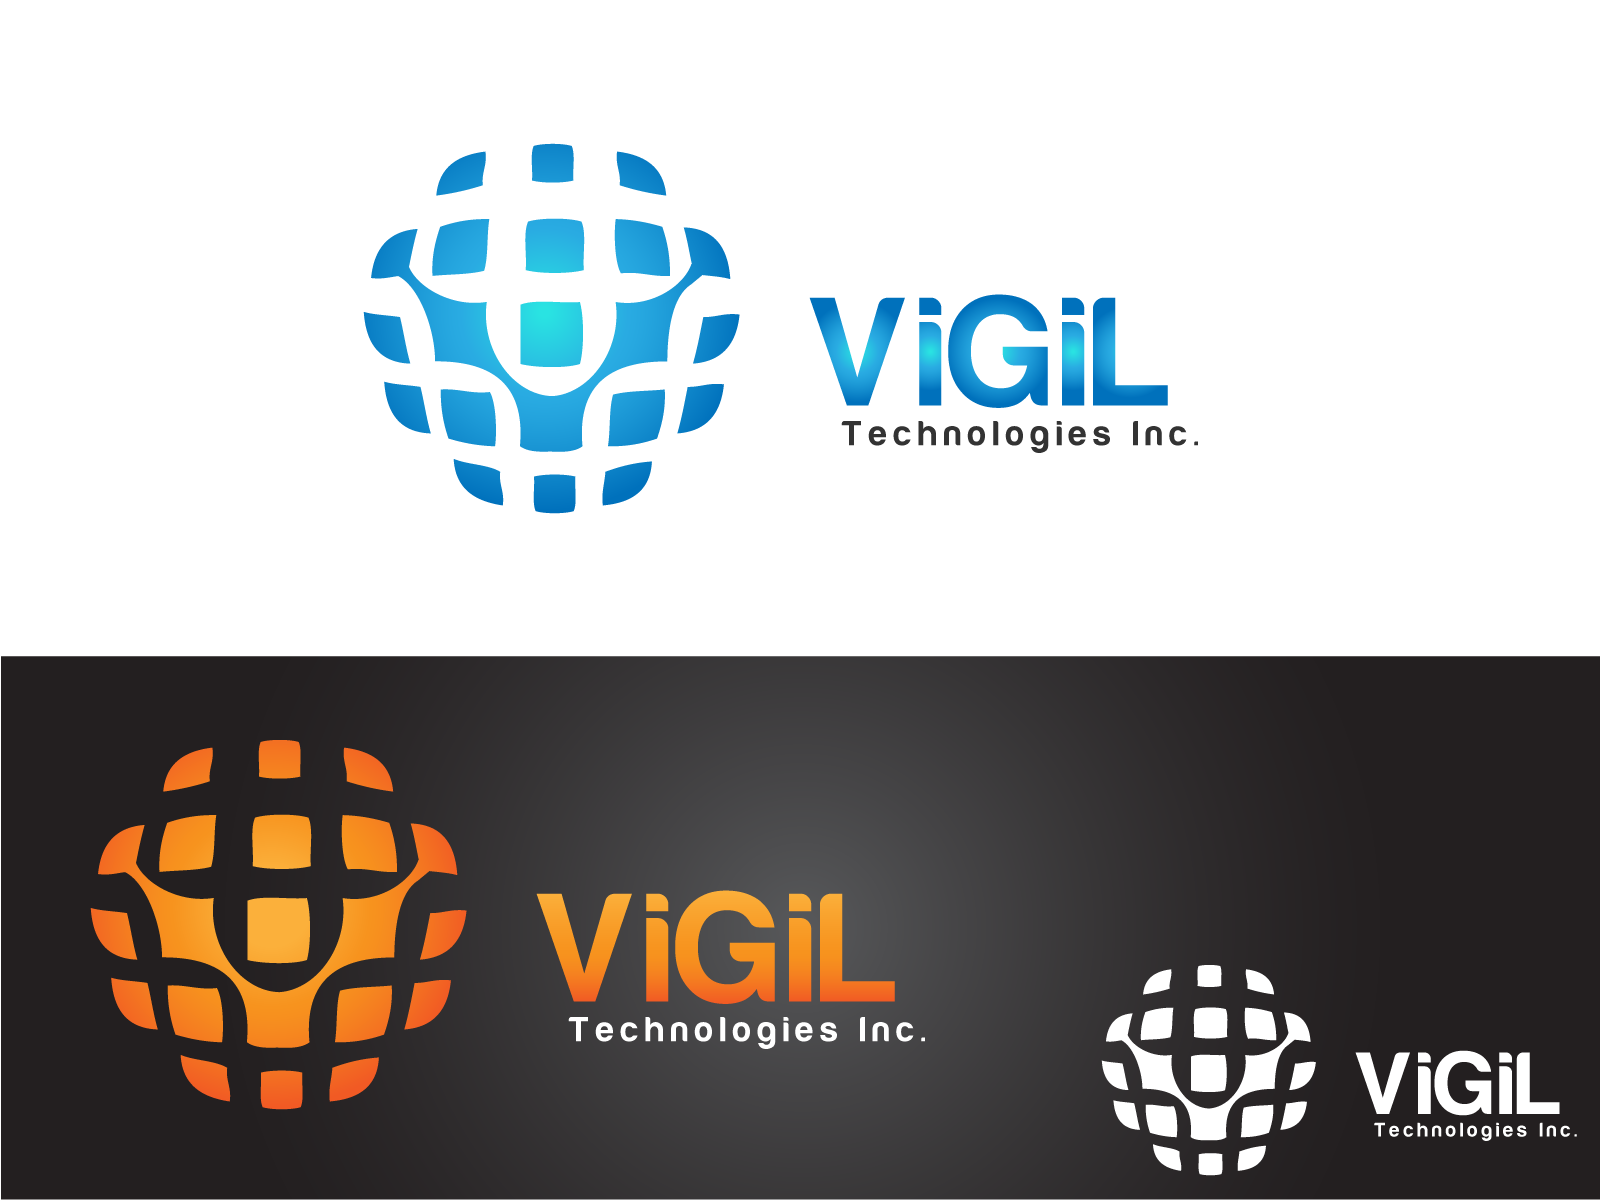 Logo Design by Jagdeep Singh - Entry No. 69 in the Logo Design Contest New Logo Design for Vigil Technologies Inc..